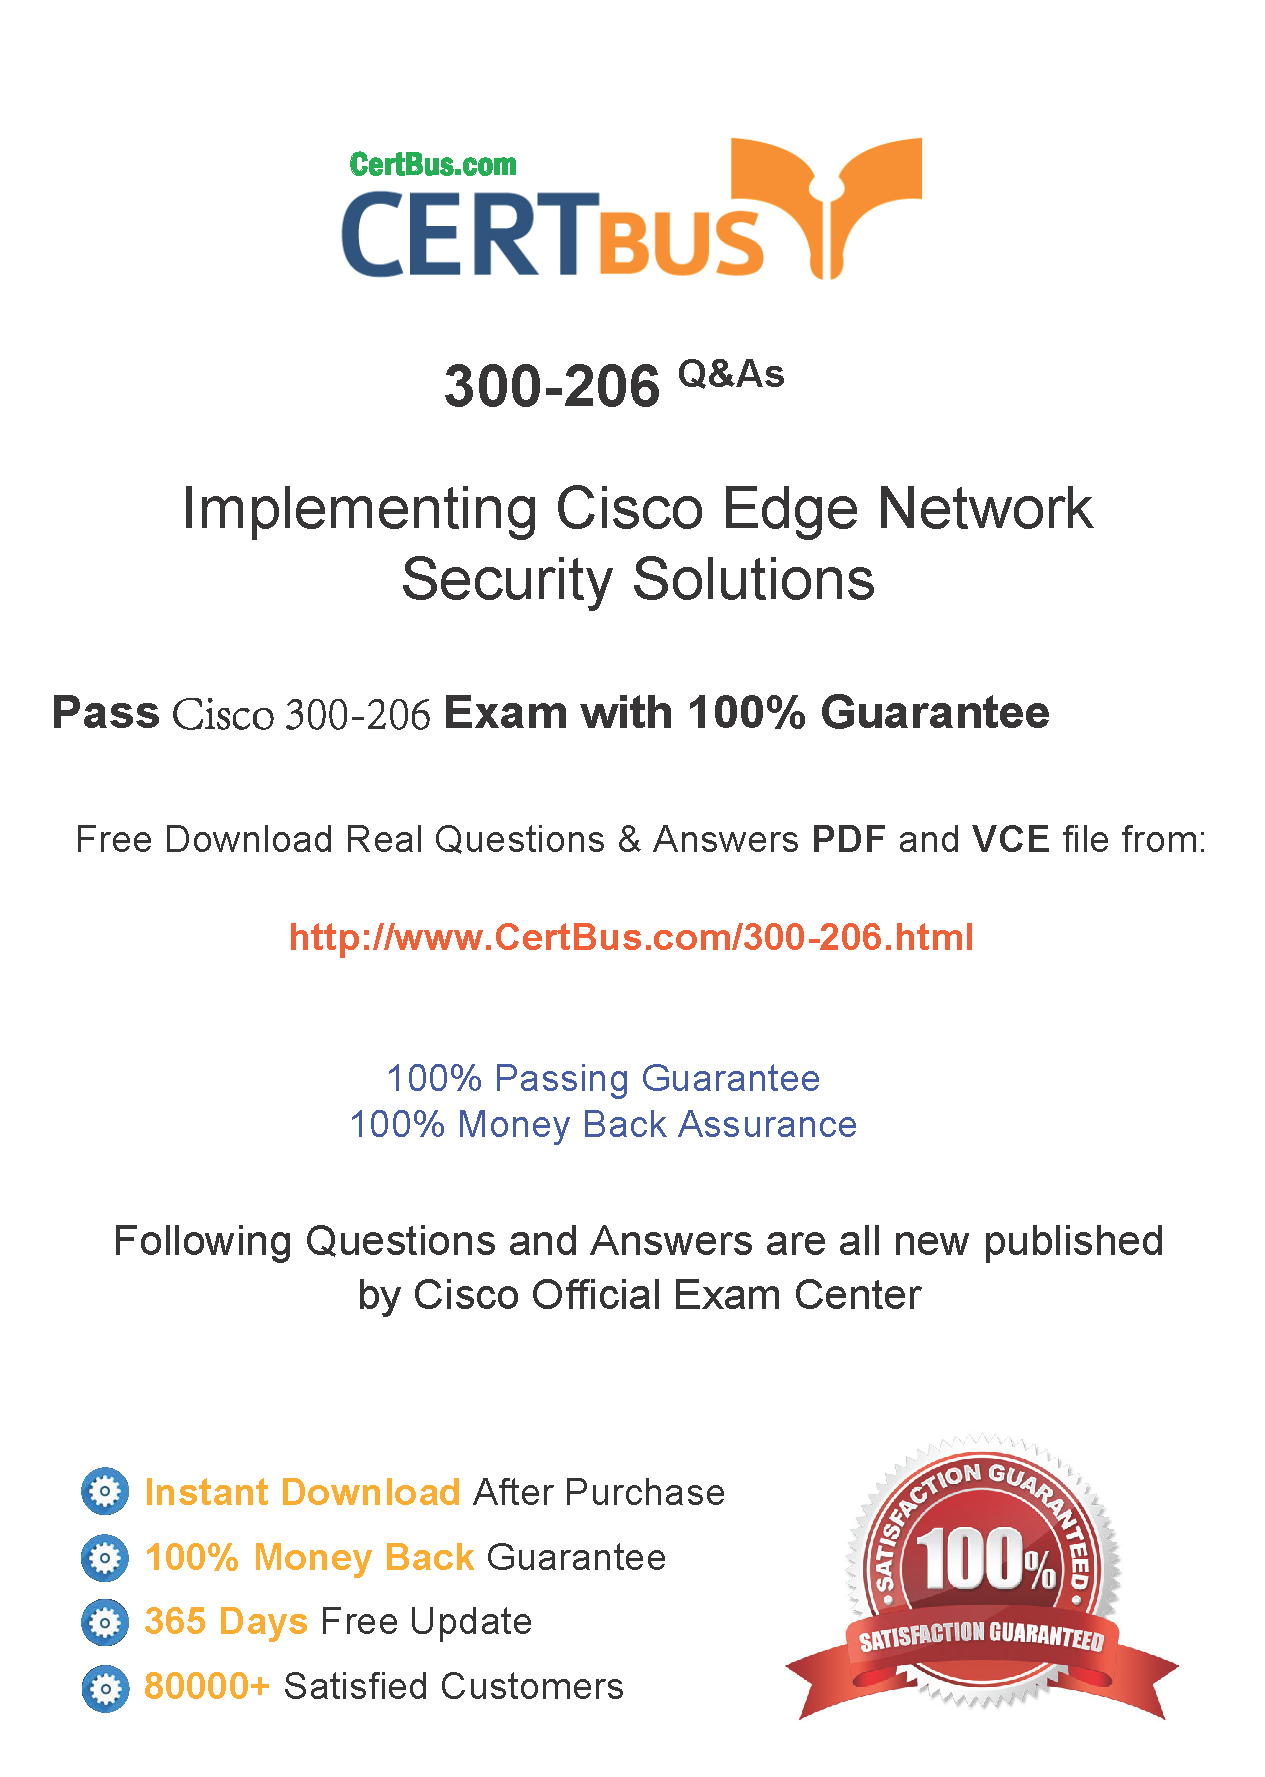 Certbus cisco 300 206 free pdfvce exam practice test dumps certbus cisco 300 206 free pdfvce exam practice test dumps download real qas 1betcityfo Image collections